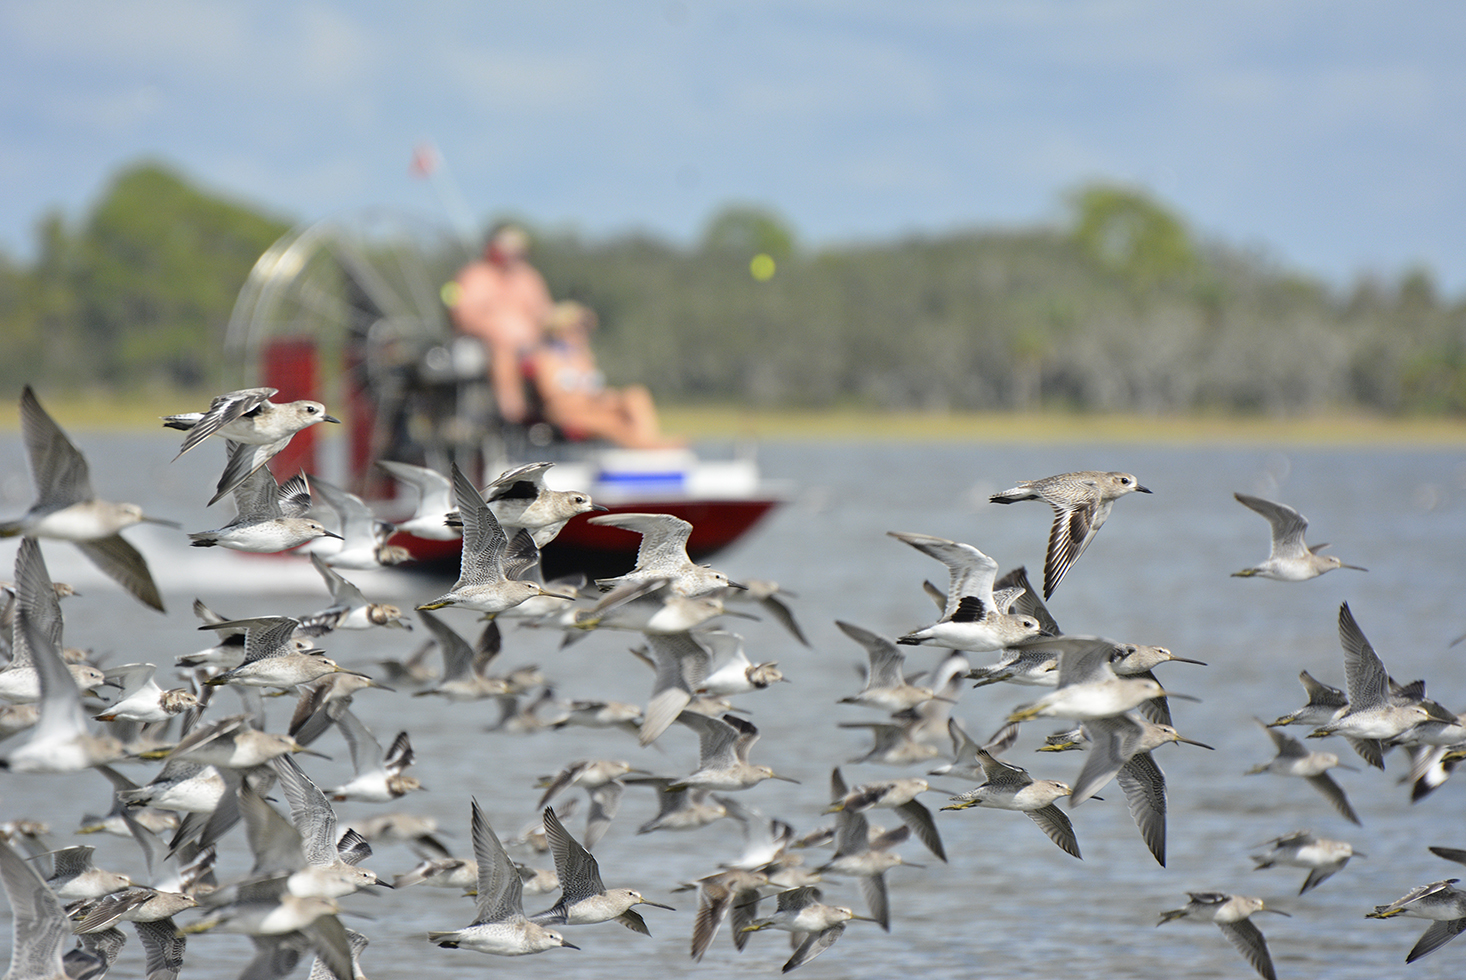 A flock of shorebirds is flushed from a roost by an airboat in coastal Florida. Photo: P. Leary